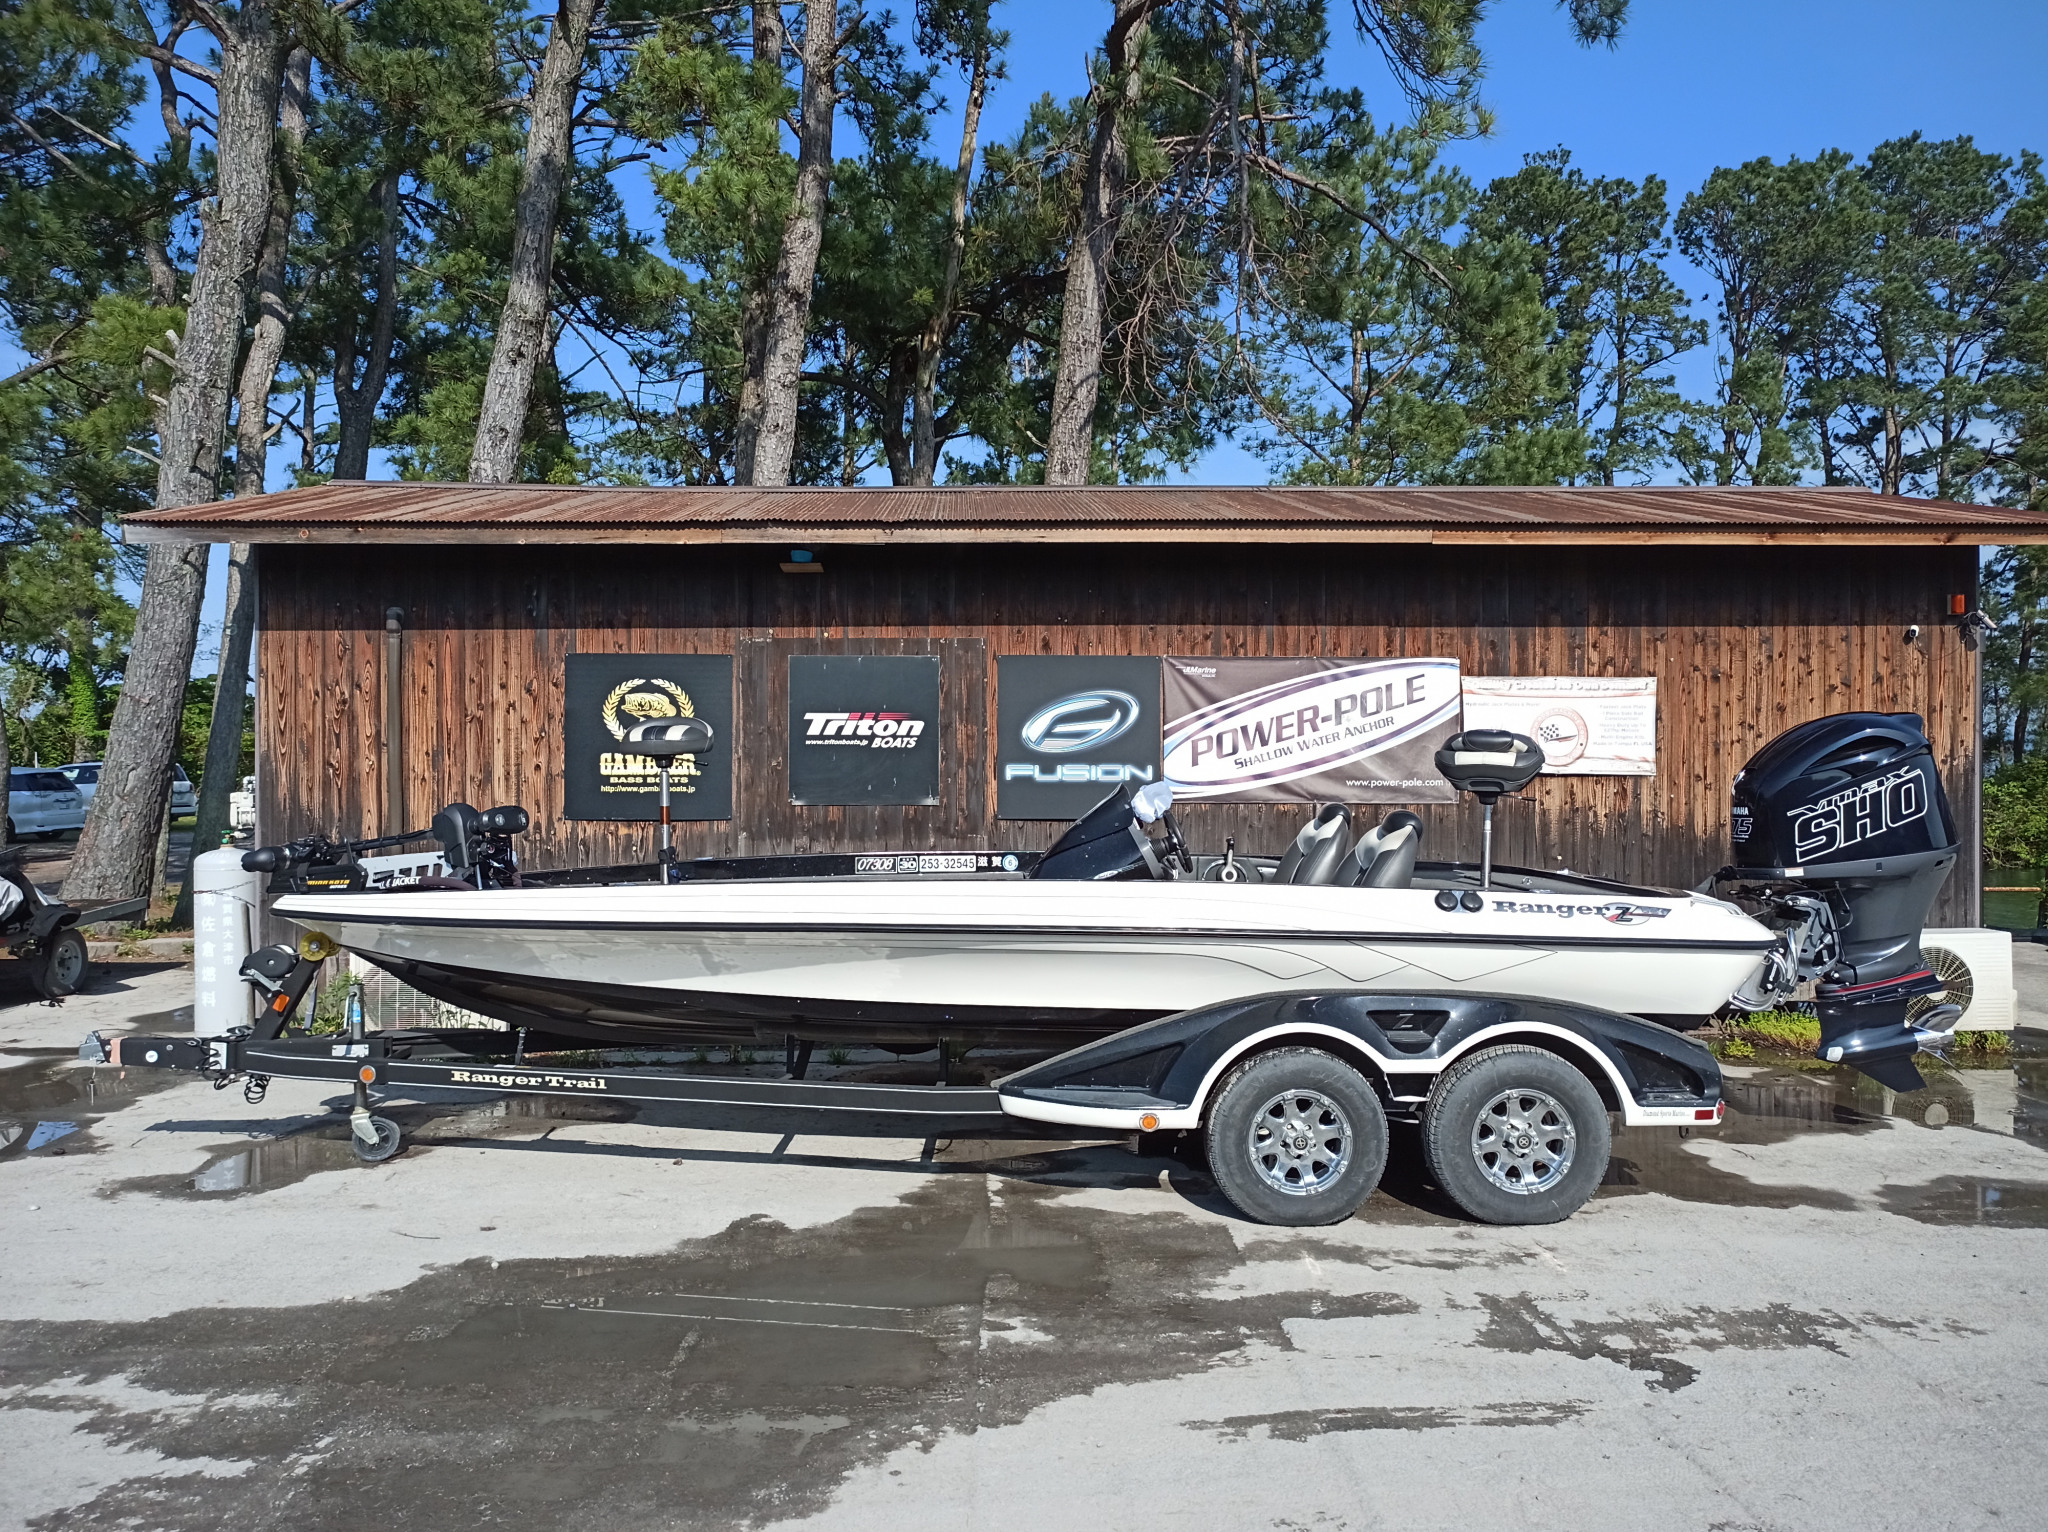 SOLD OUT '12 Ranger Boats Z521 Comanche with SHO275